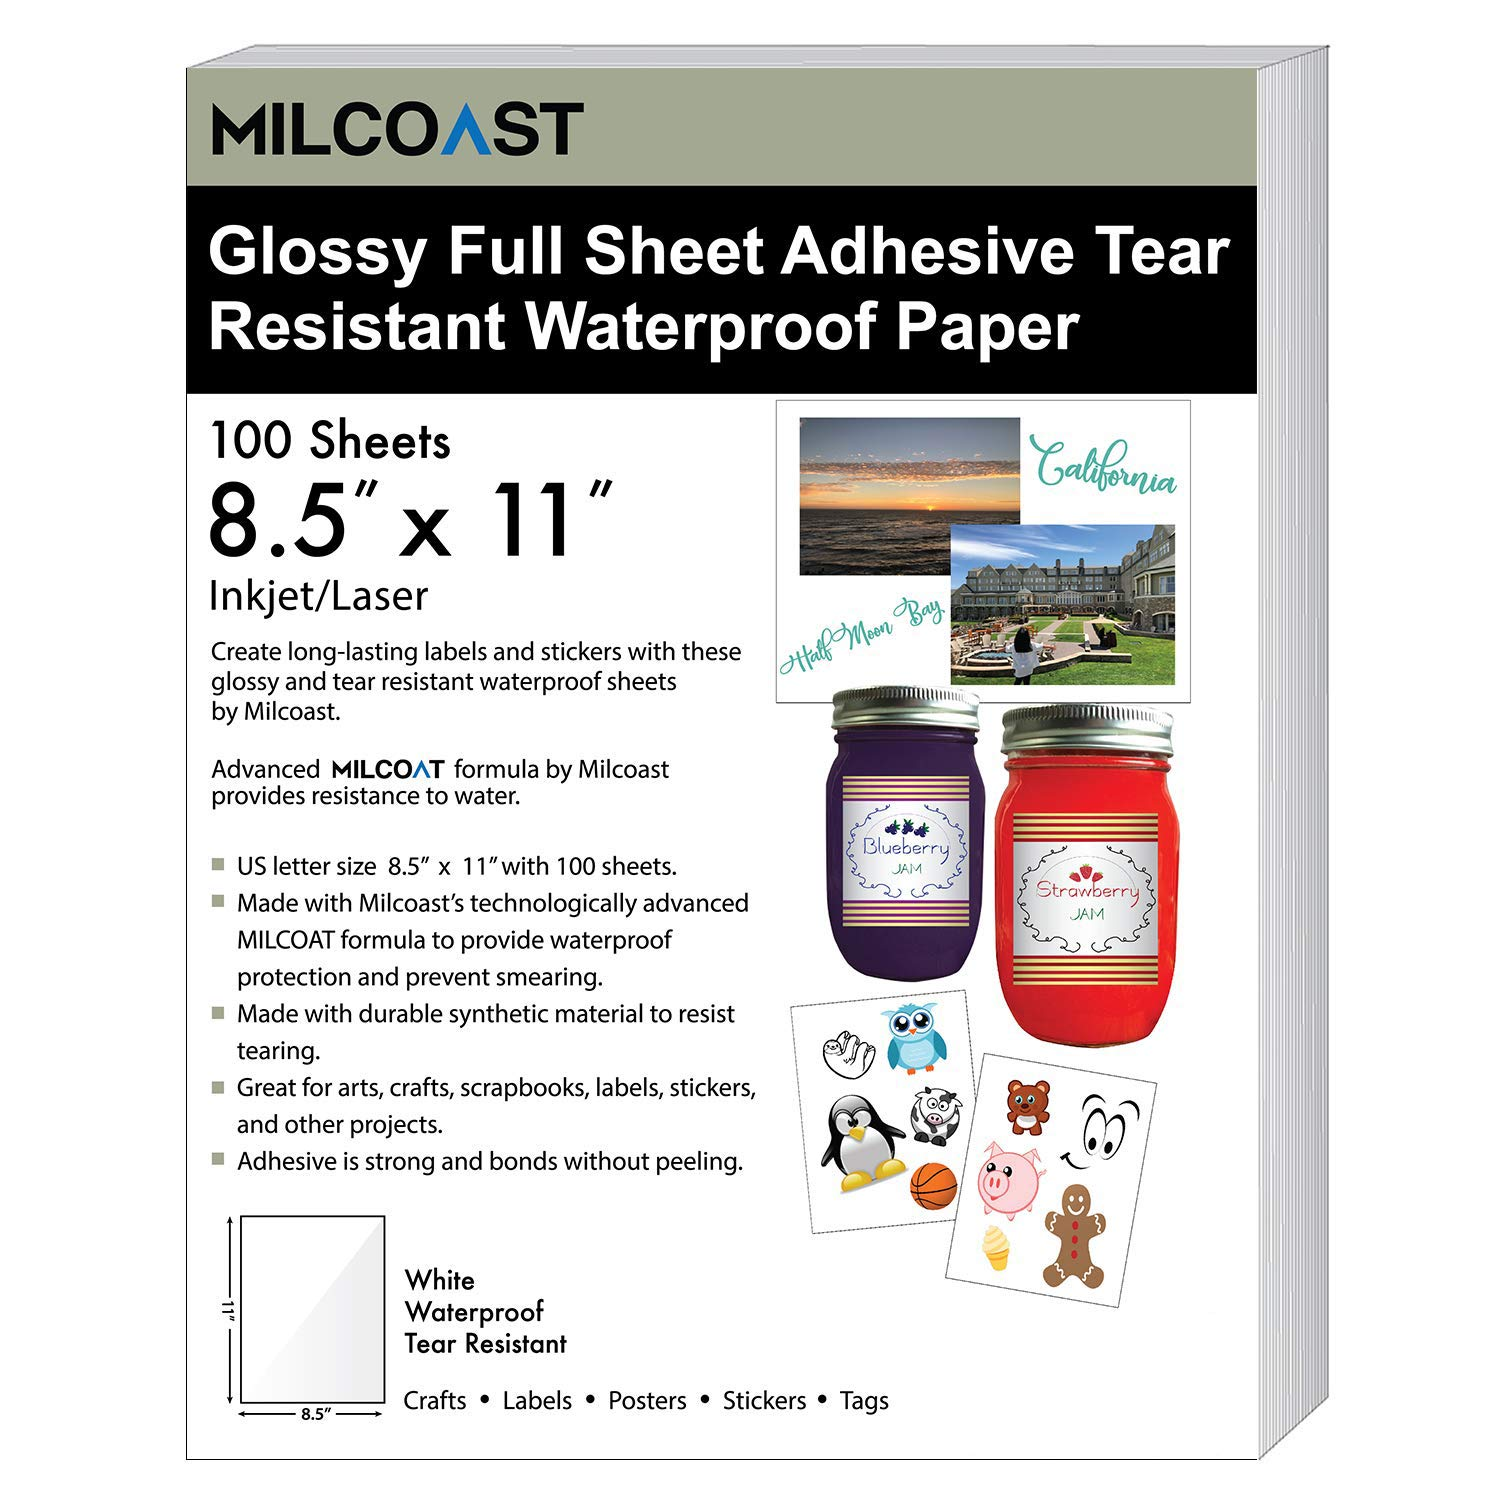 Milcoast Glossy White Full Sheet 8.5'' x 11'' Adhesive Tear Resistant Waterproof Photo Craft Paper - for Inkjet/Laser Printers - for Stickers, Labels, Scrapbooks, Bottles, Arts, Crafts (100 Sheets)